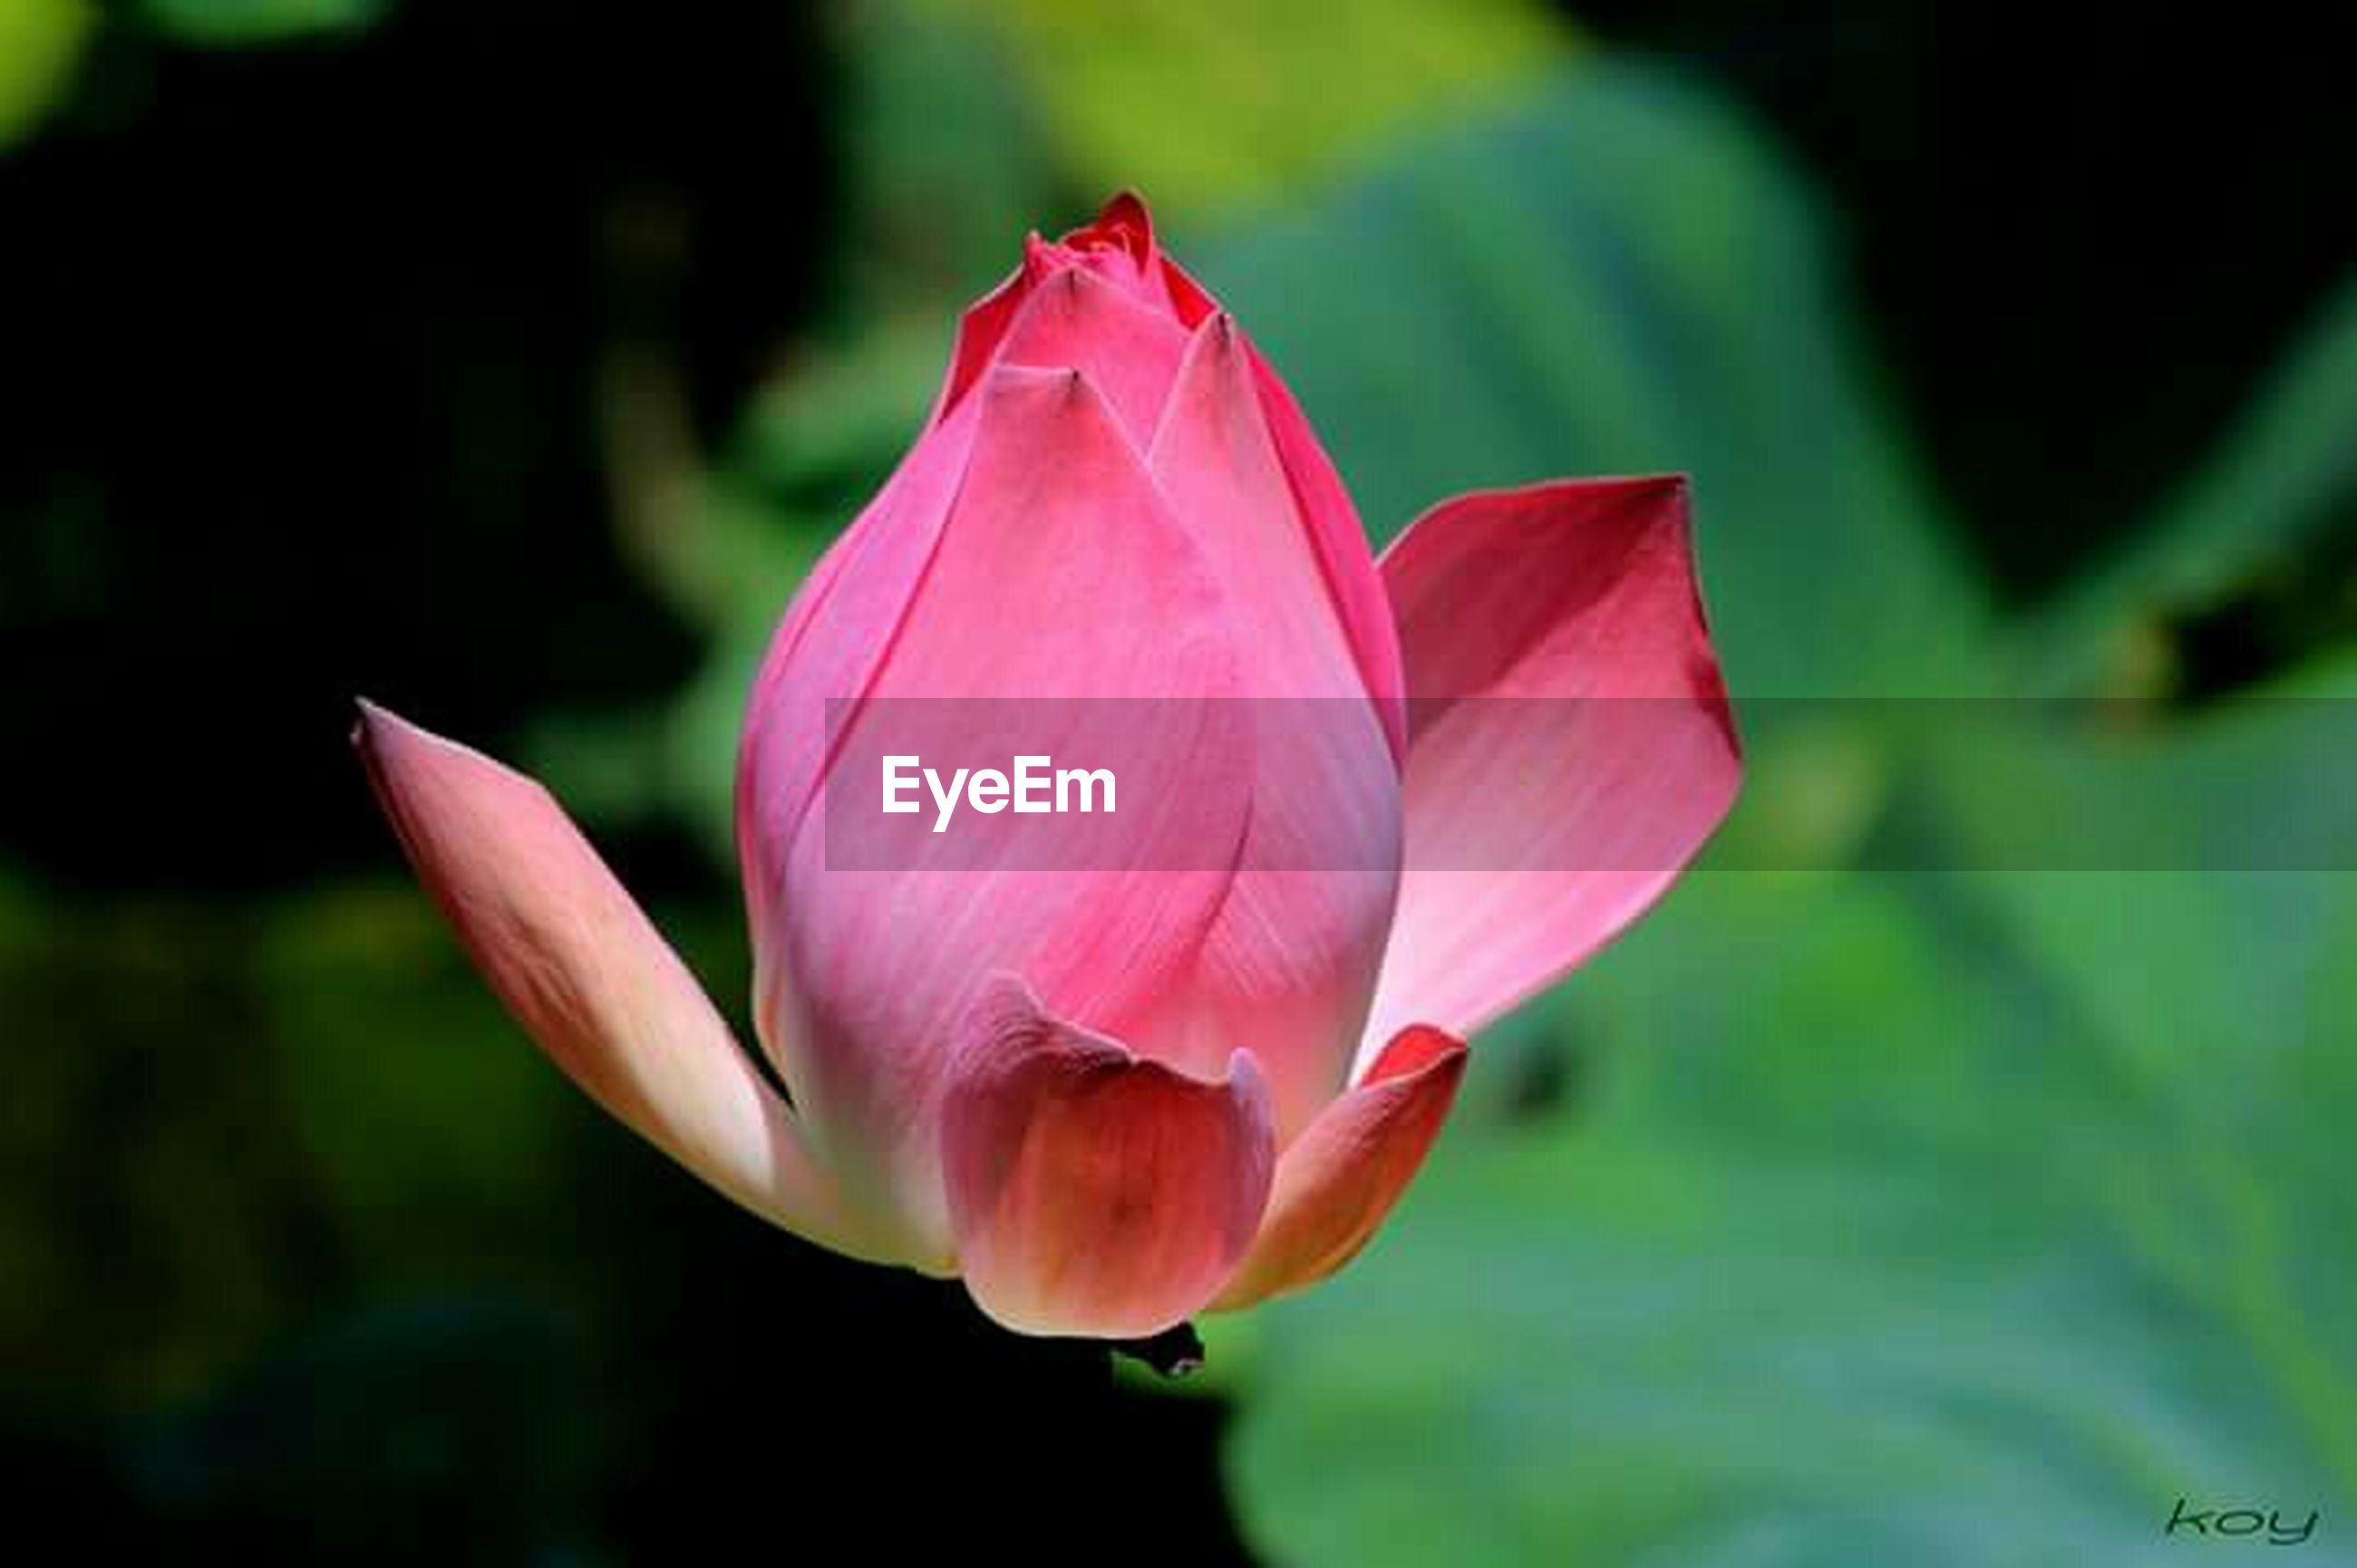 flower, petal, freshness, flower head, pink color, fragility, beauty in nature, growth, single flower, close-up, focus on foreground, nature, blooming, pink, plant, leaf, stem, water lily, in bloom, blossom